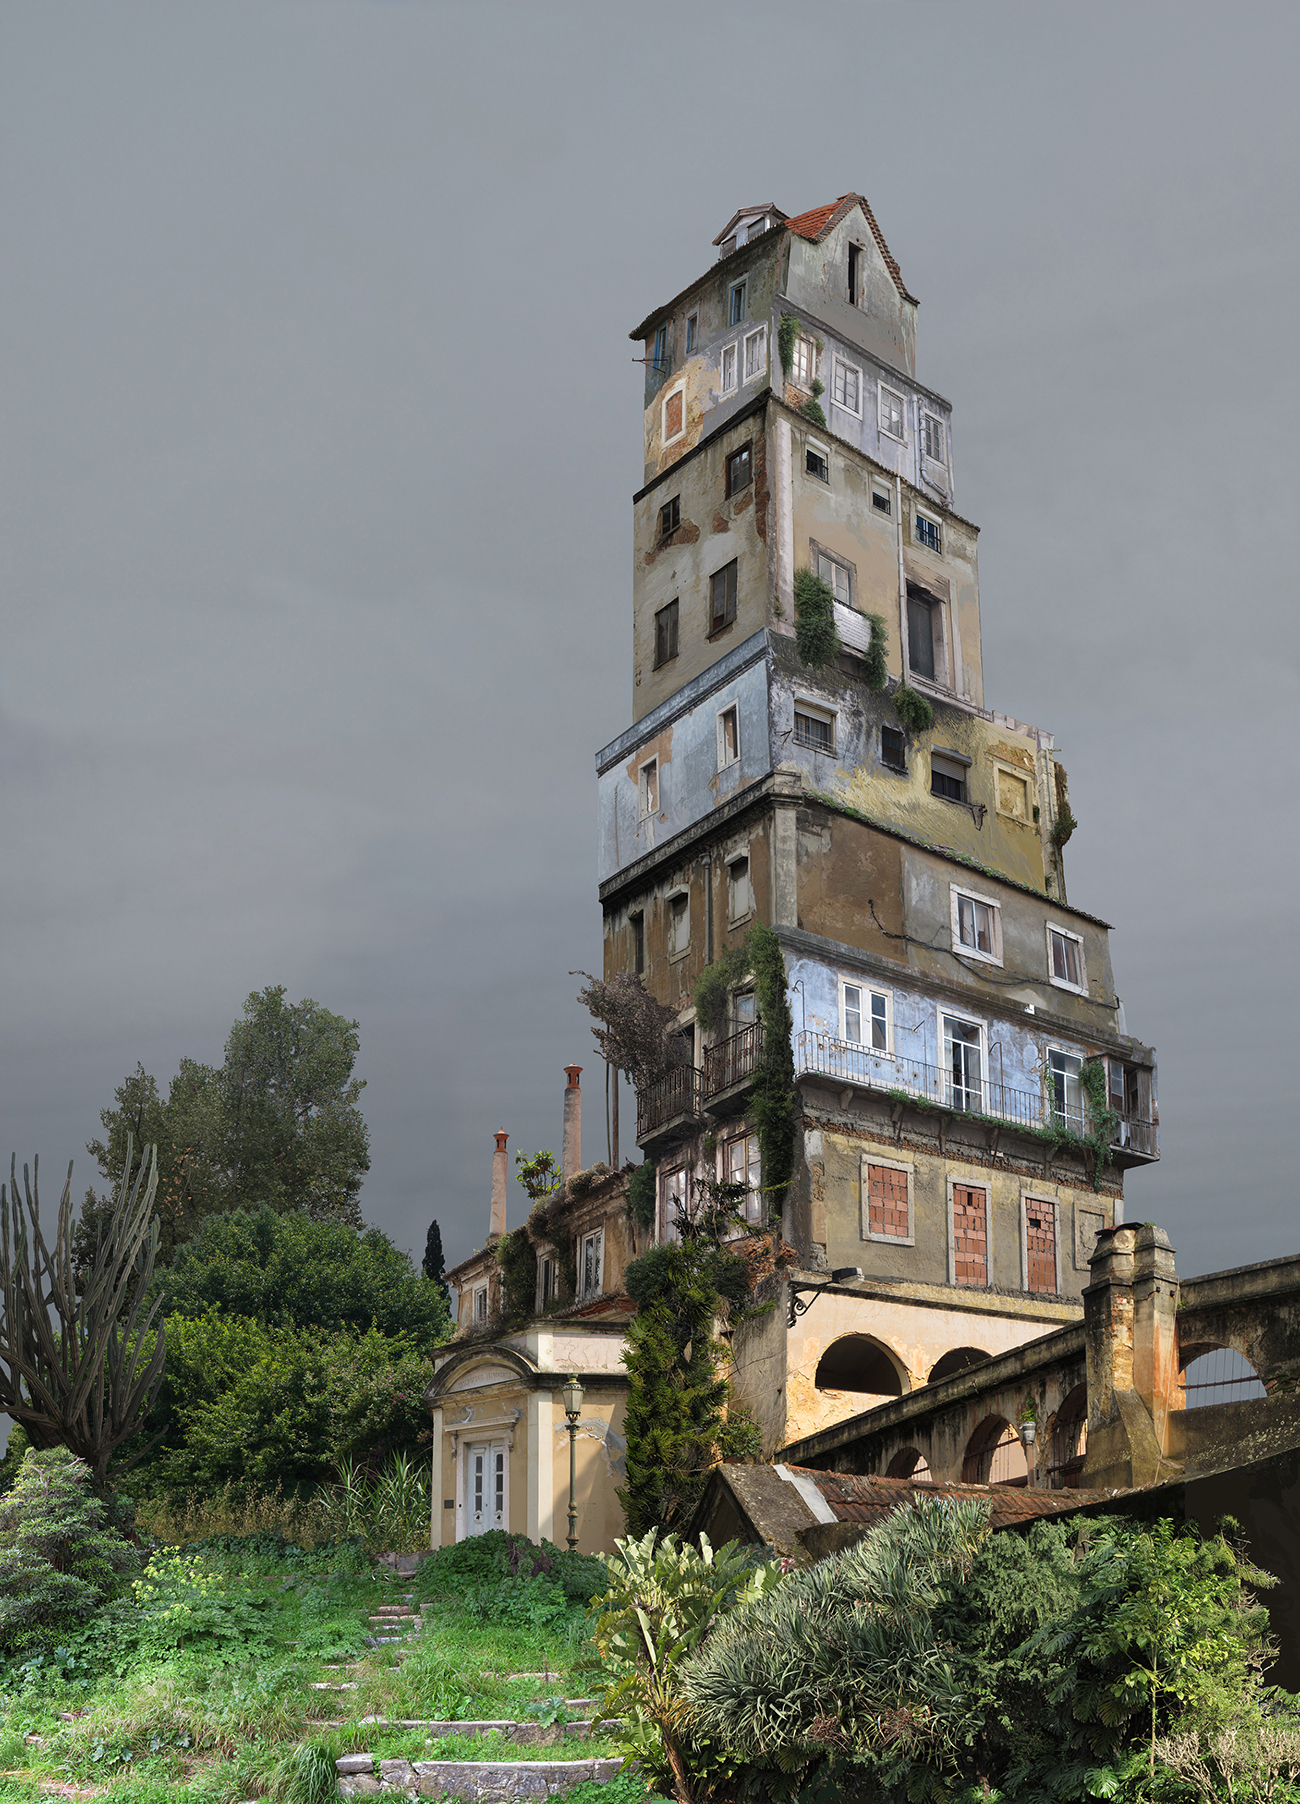 tall and decrepit composite building